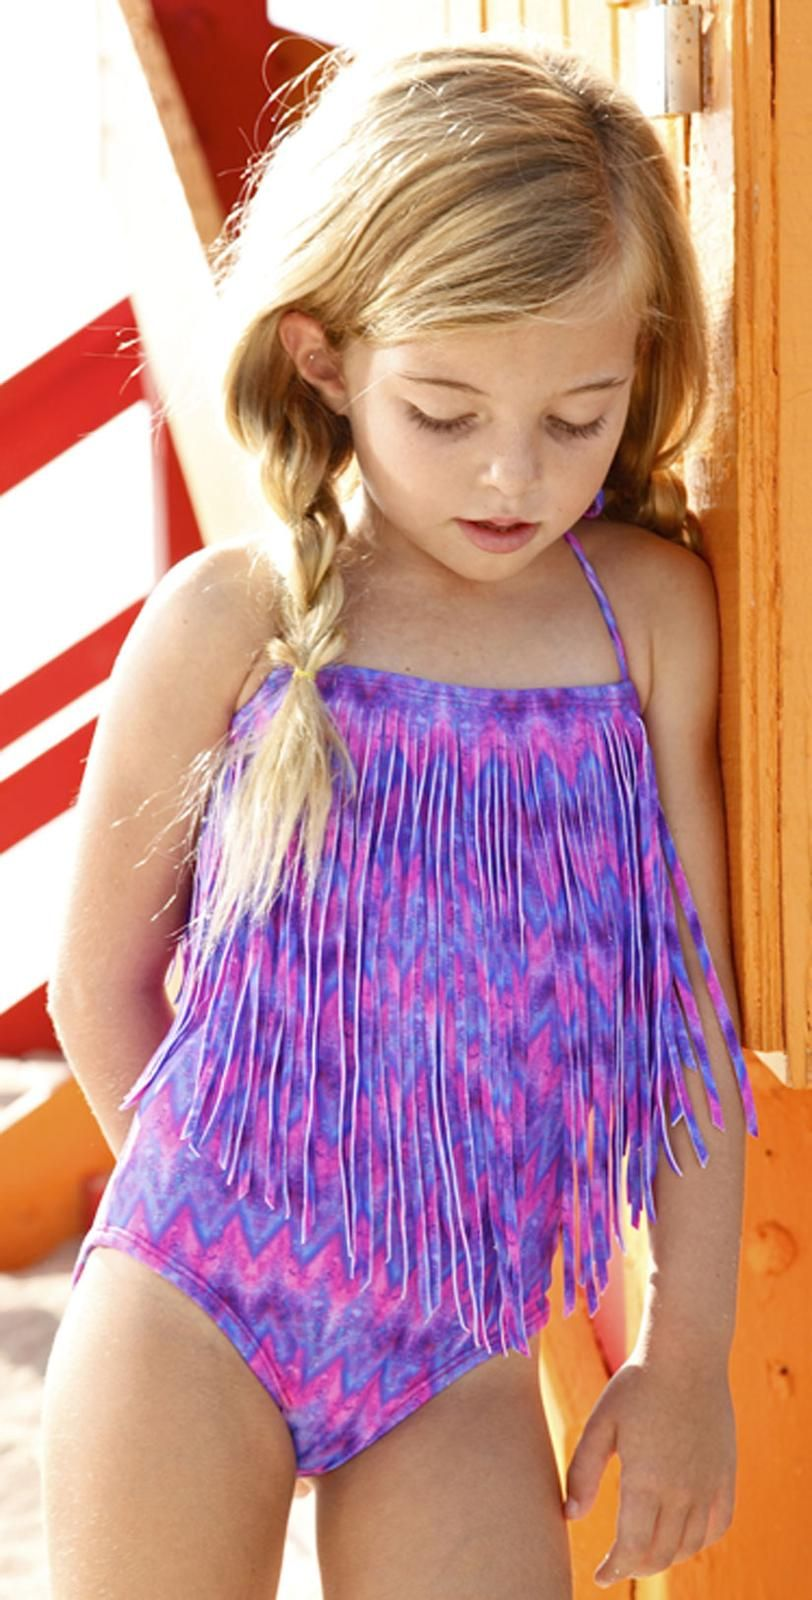 Peixoto Kids Berry Zilggy Magnolia Swimsuit 51603-P38 ...